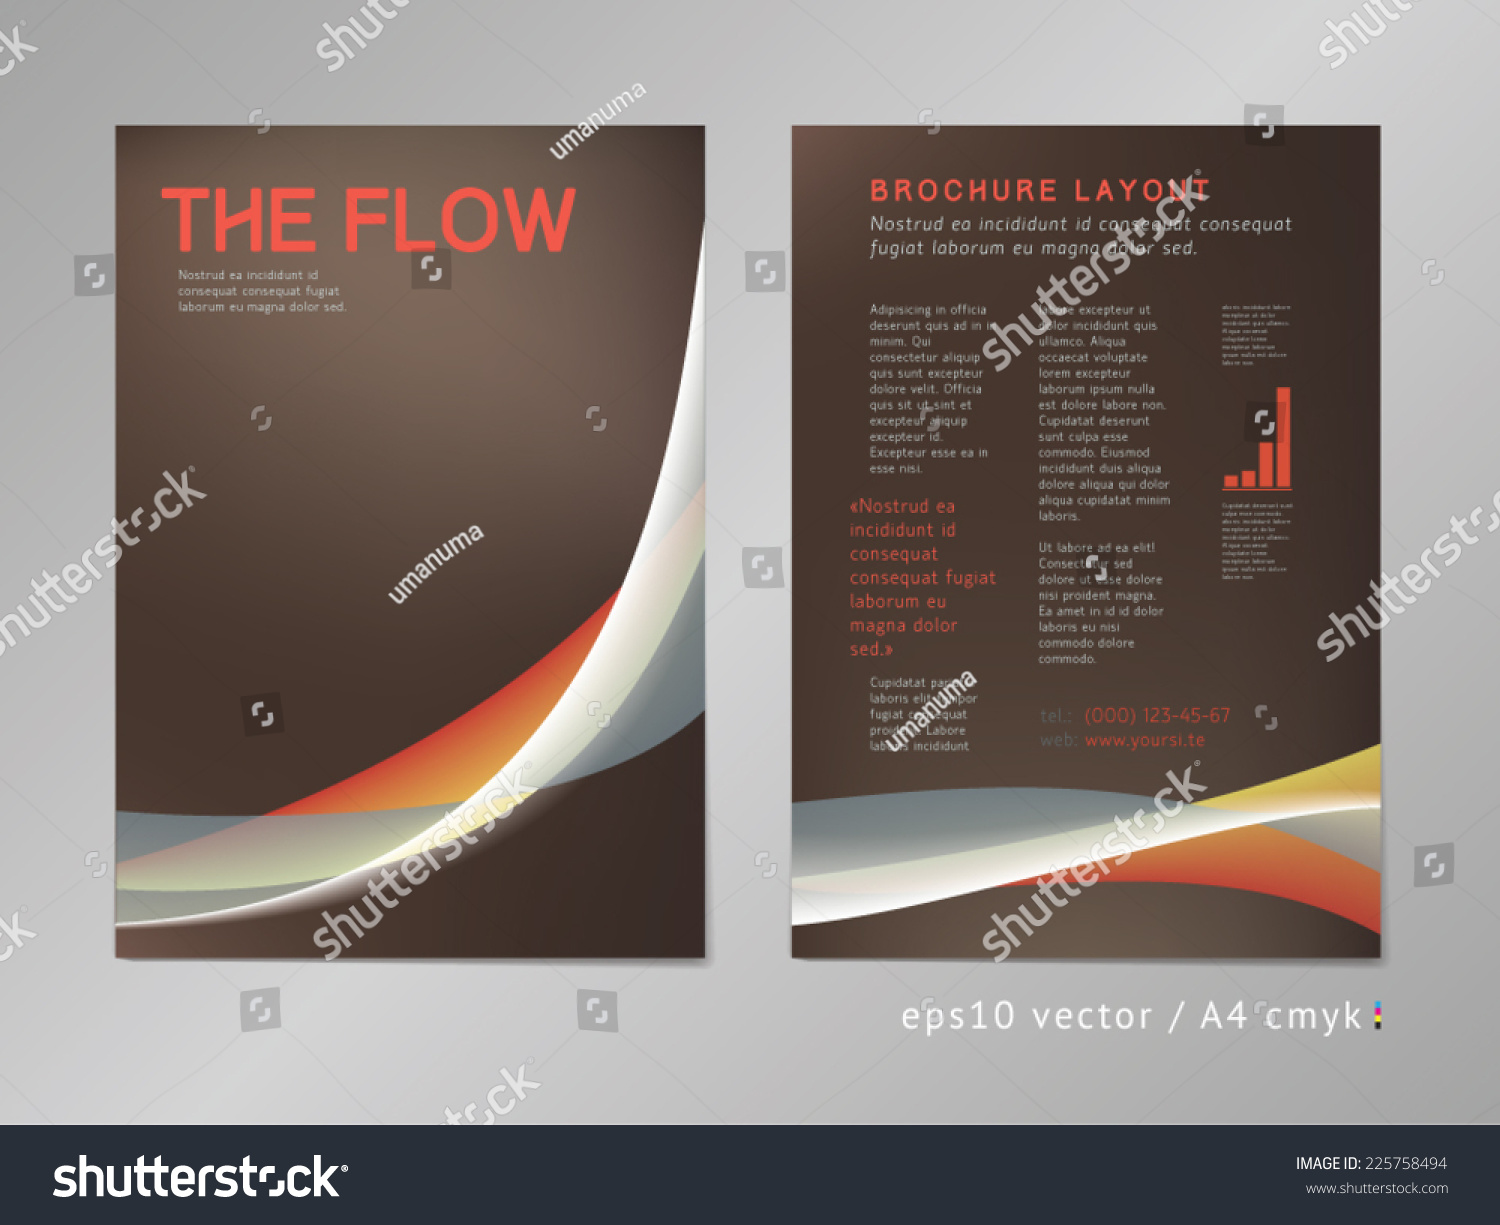 Leaflet brochure cover page layout template color blend design geometric soft